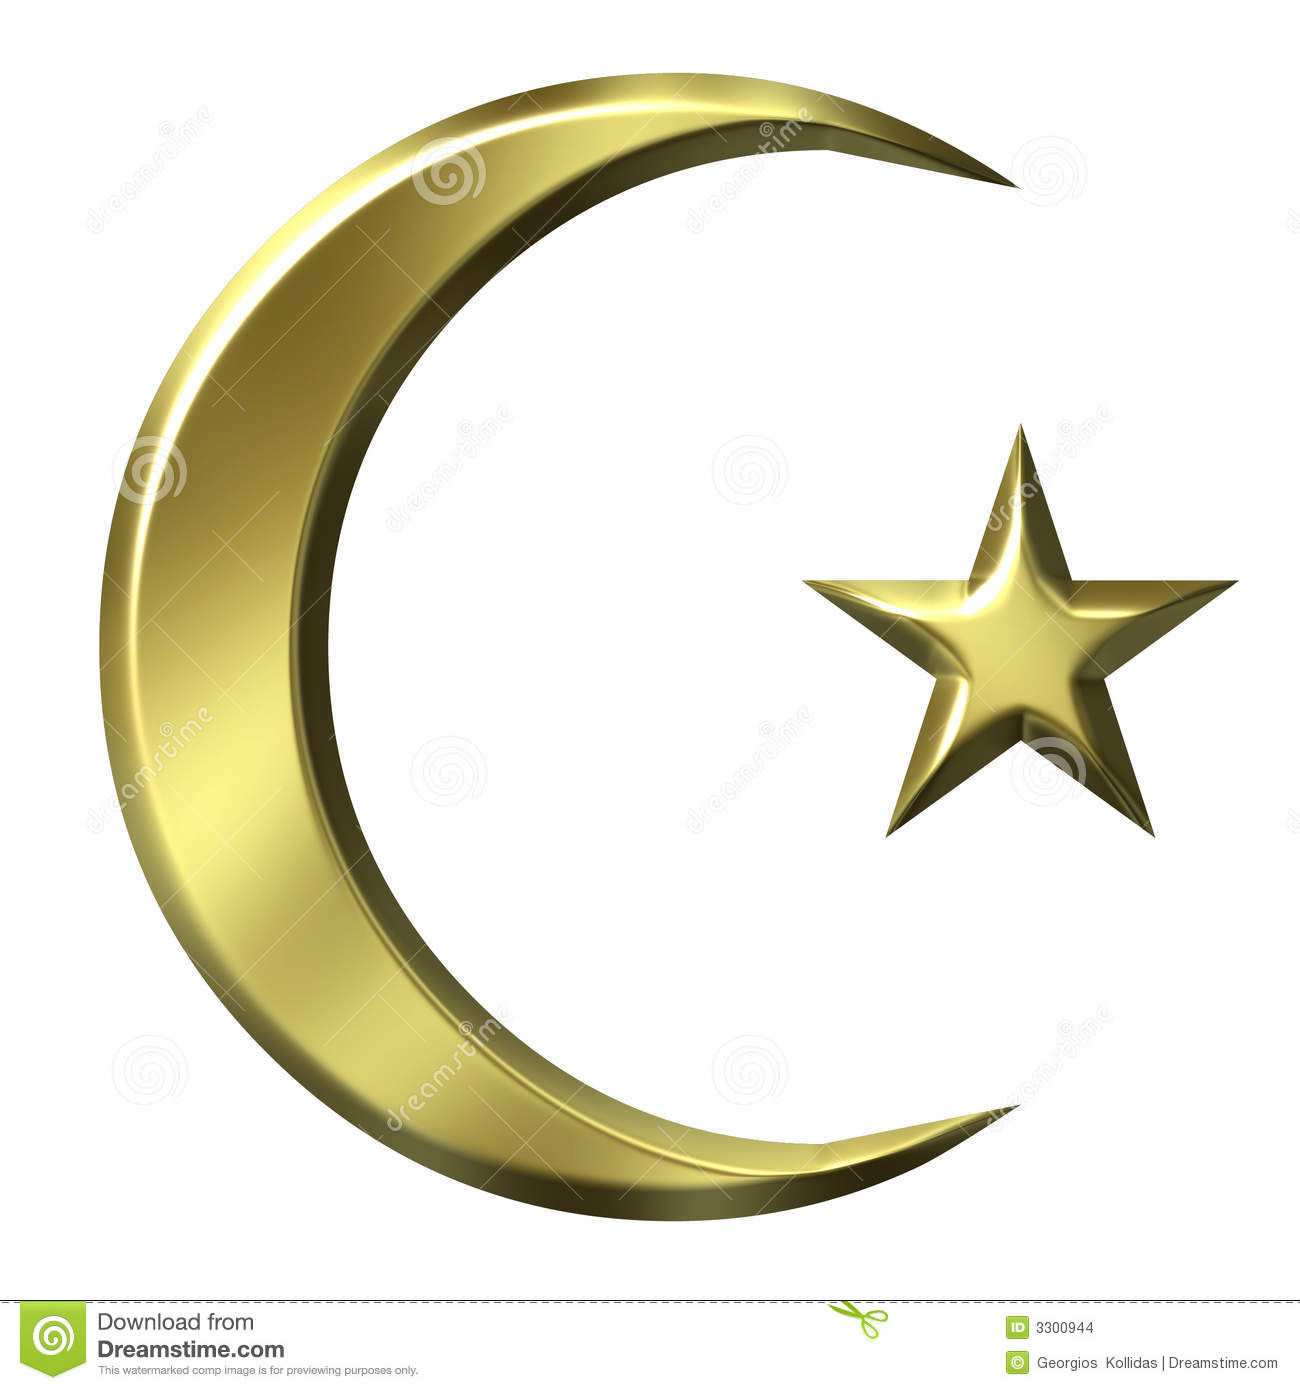 3D Golden Islamic Symbol Stock Images - Image: 3300944